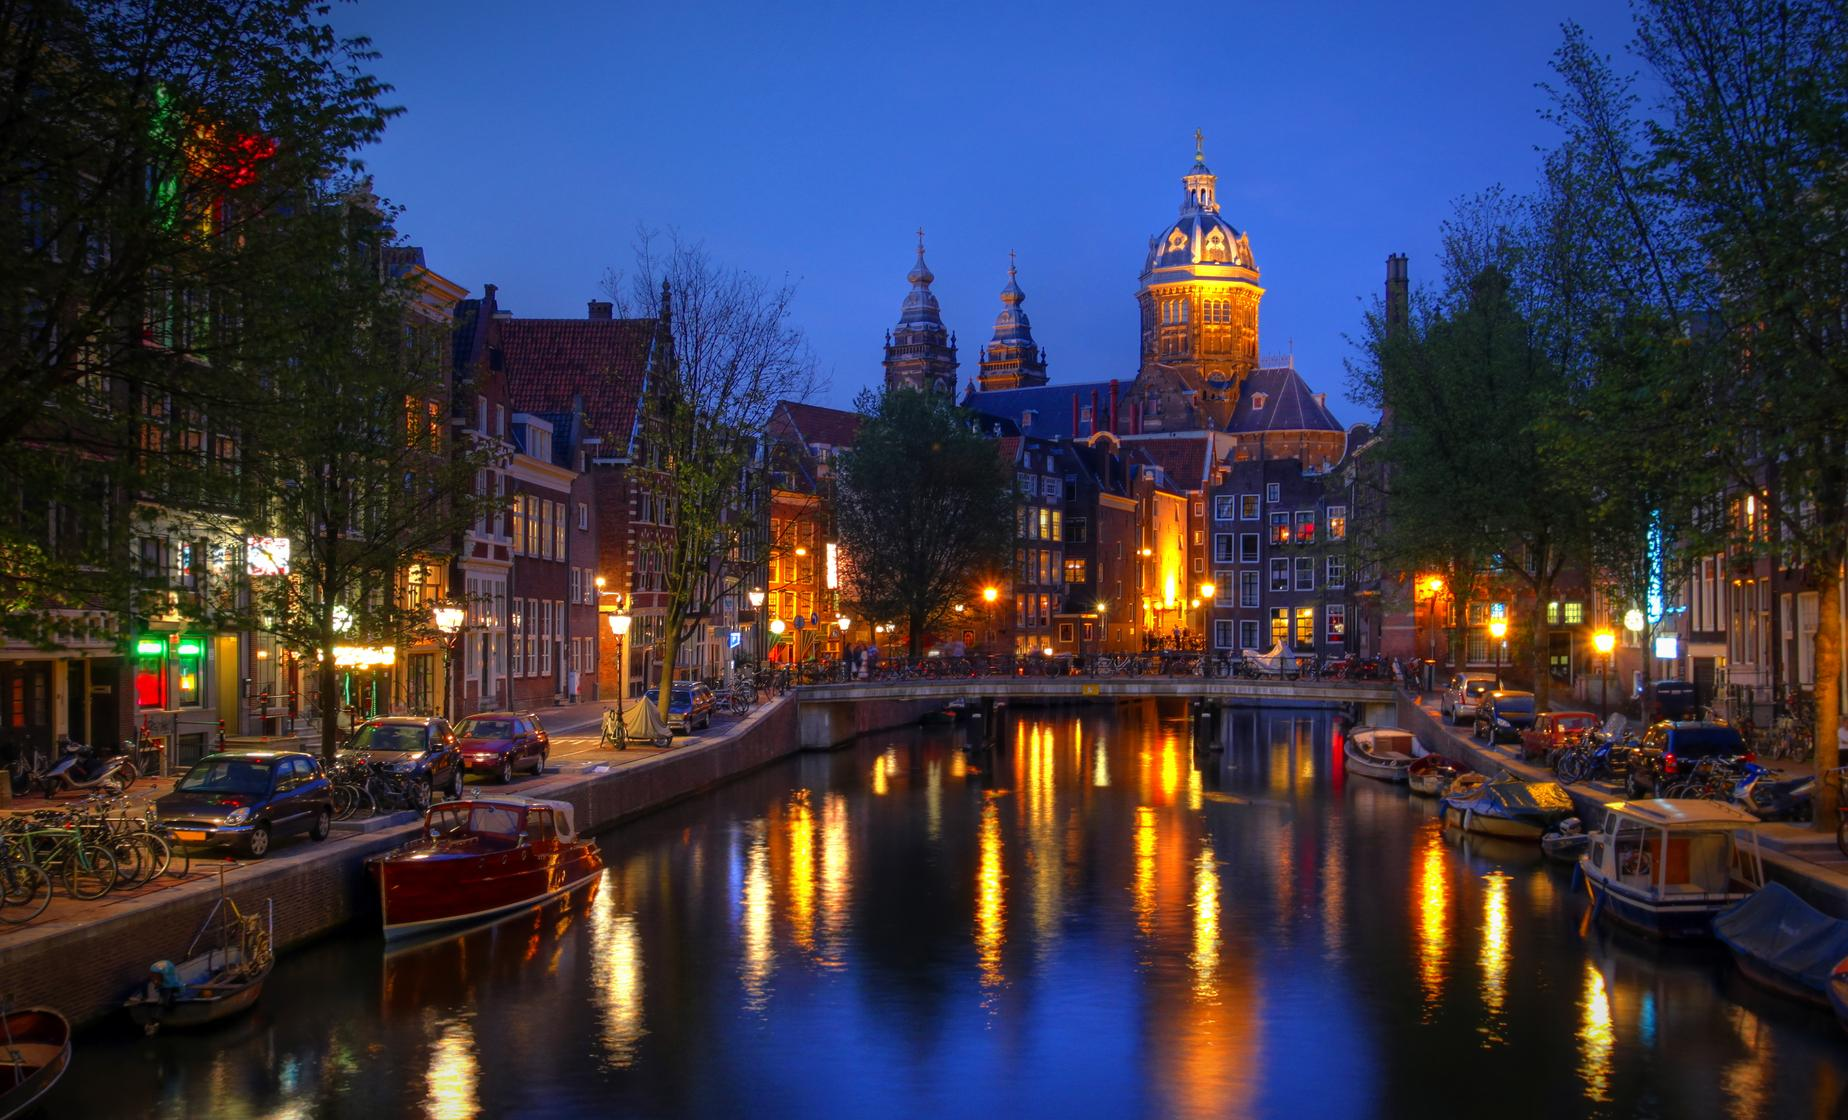 Candlelight Cruise in Amsterdam